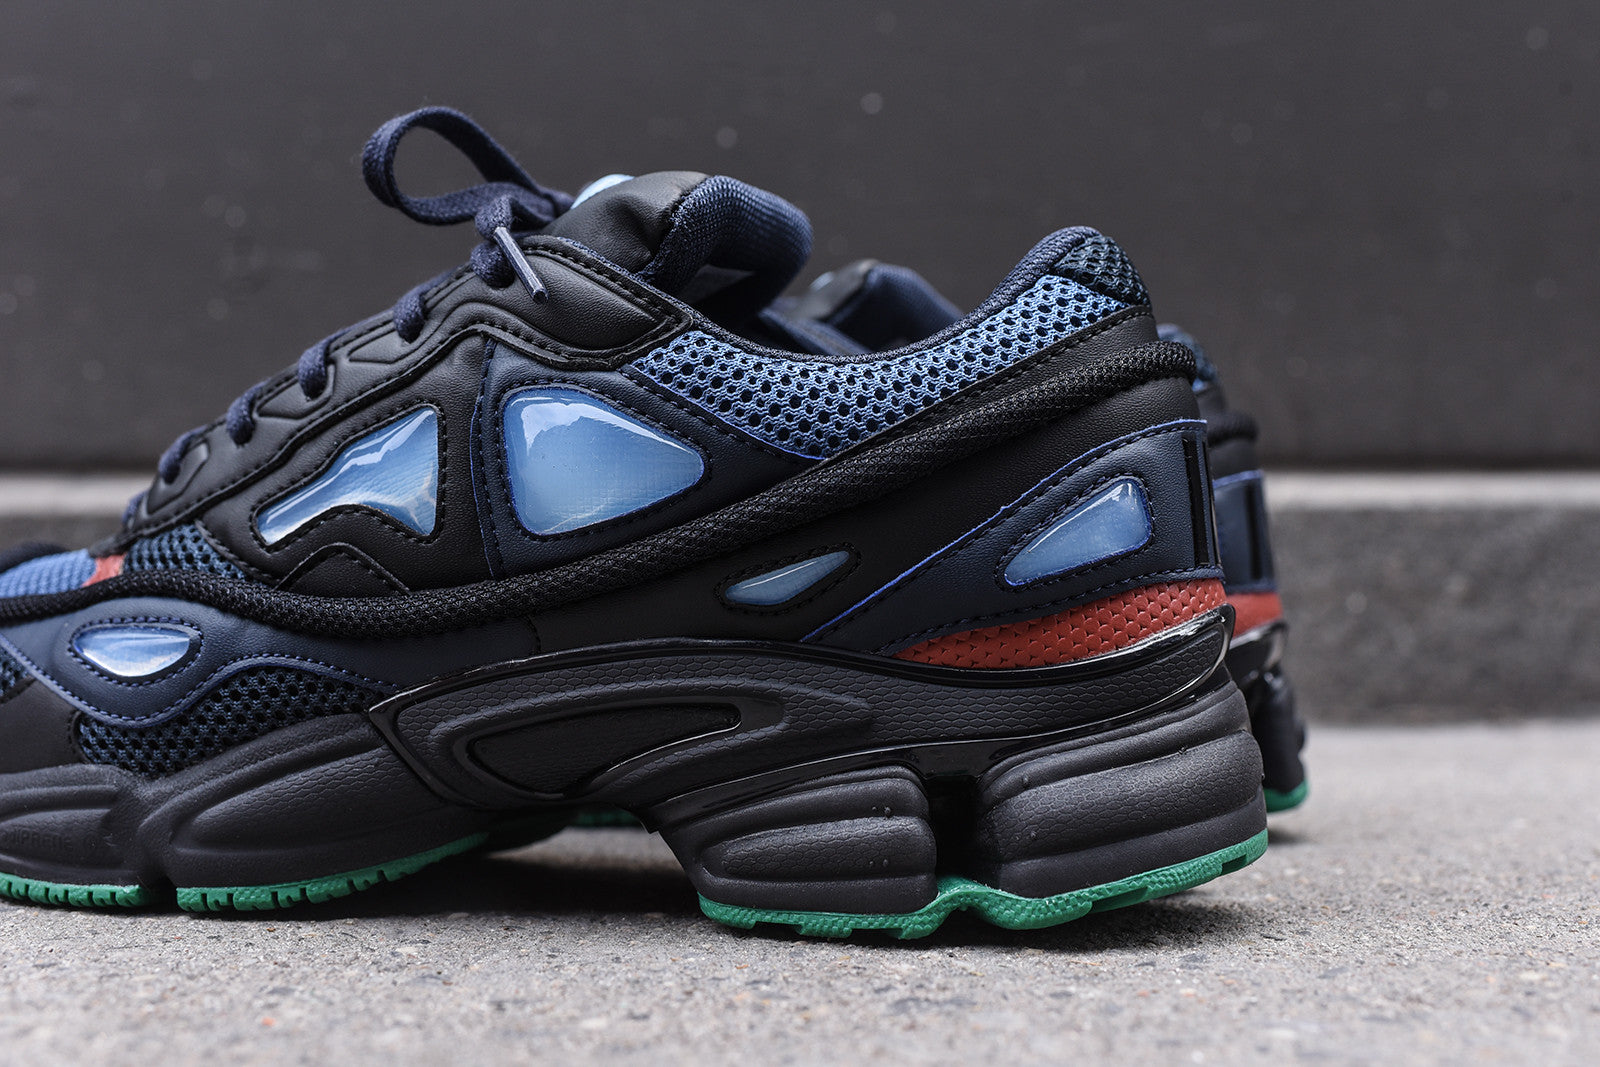 adidas Originals x Raf Simons Ozweego 2 OG - Night Marine